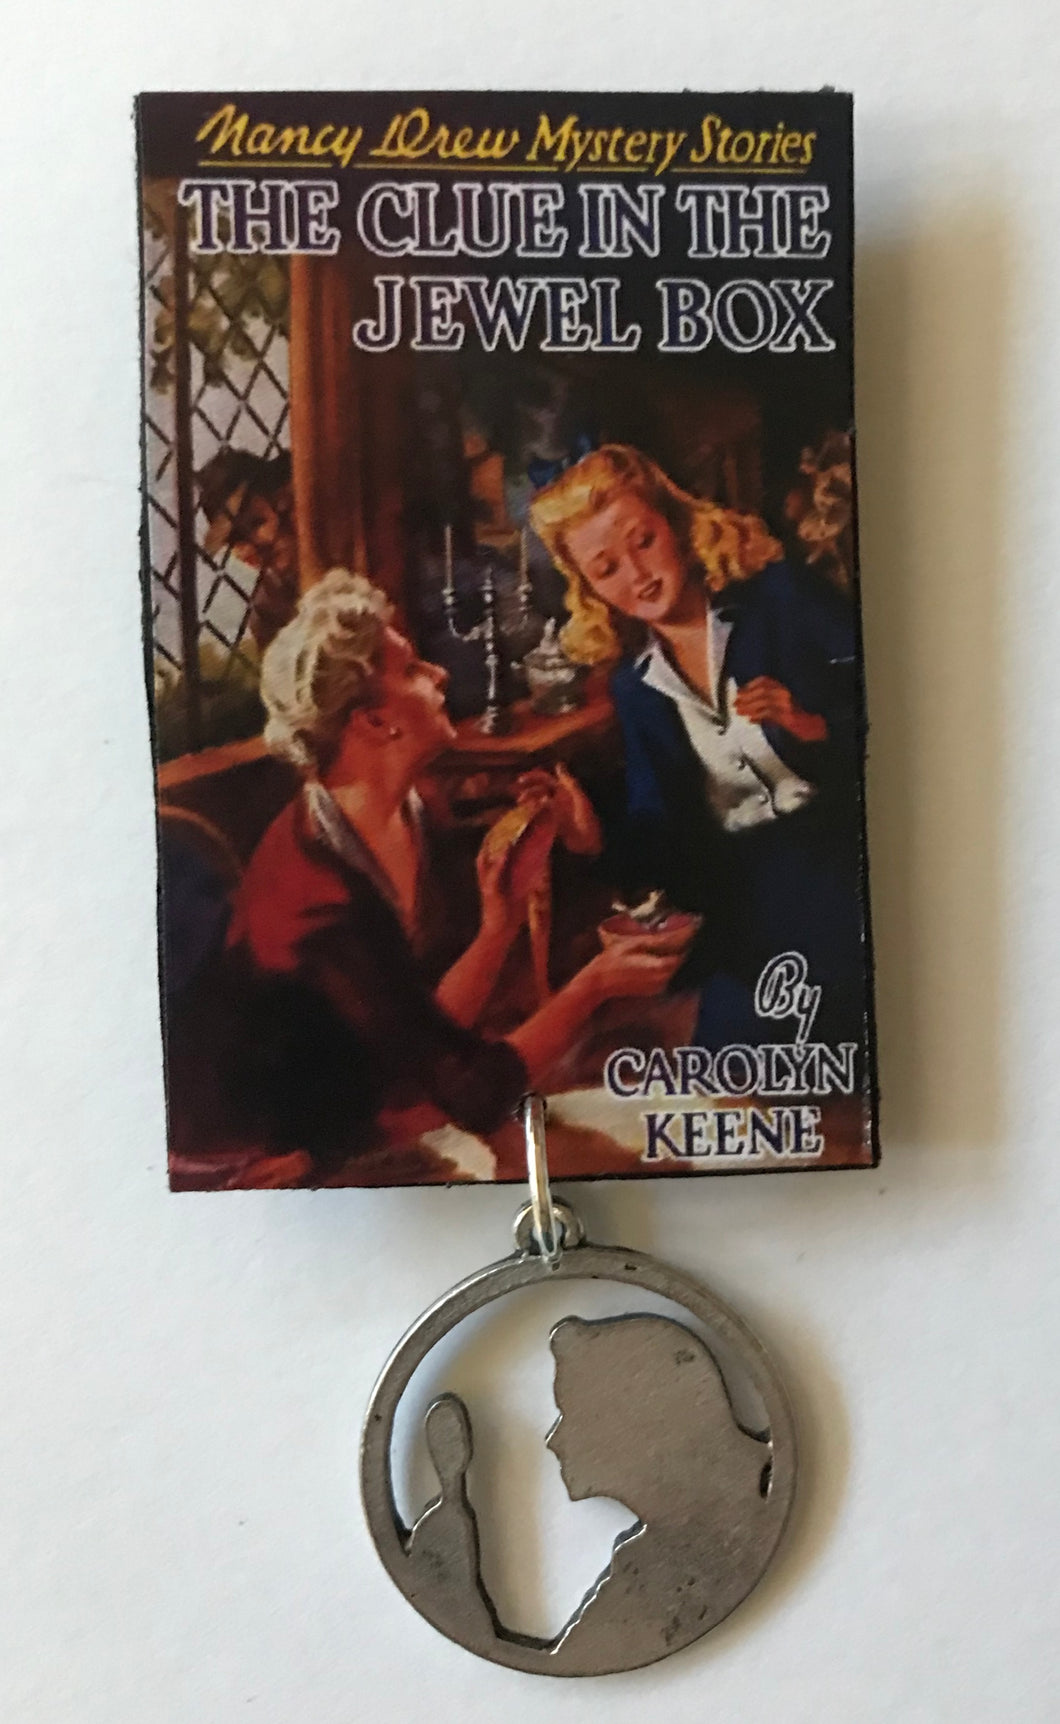 Nancy Drew Book Cover Jewel Box  Pin or Ornament